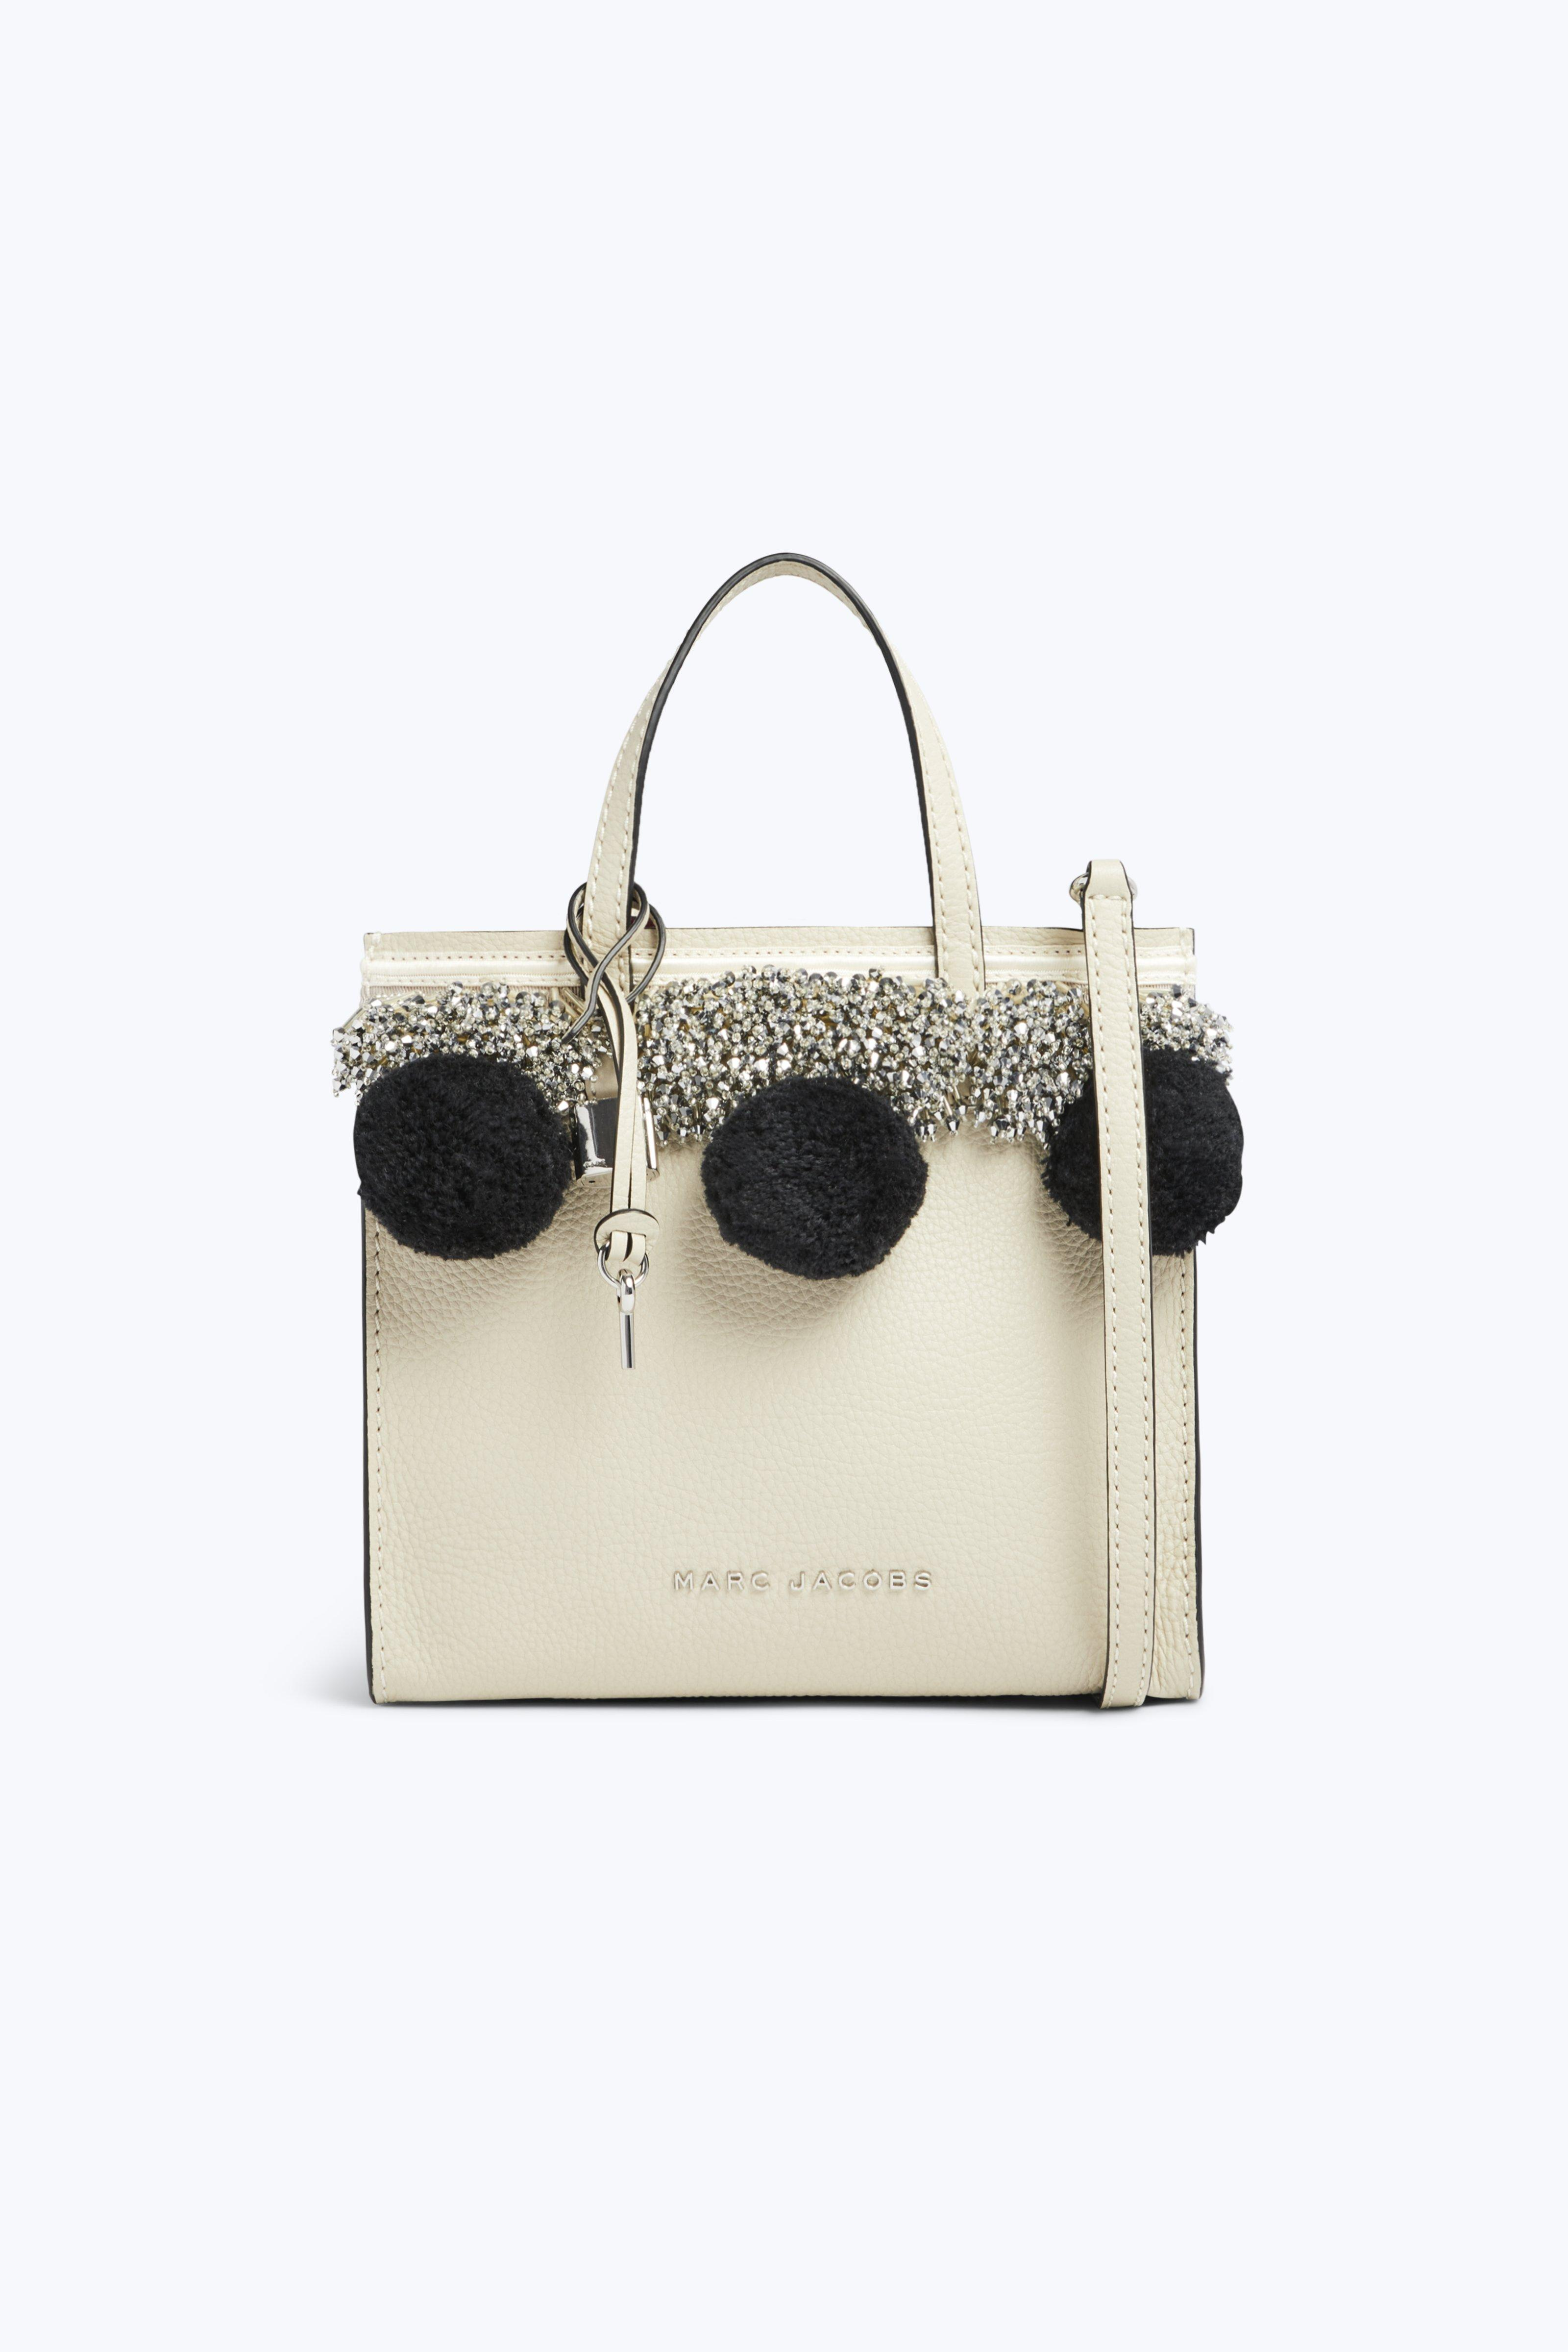 THE MINI GRIND BEADS & POMS LEATHER CROSSBODY